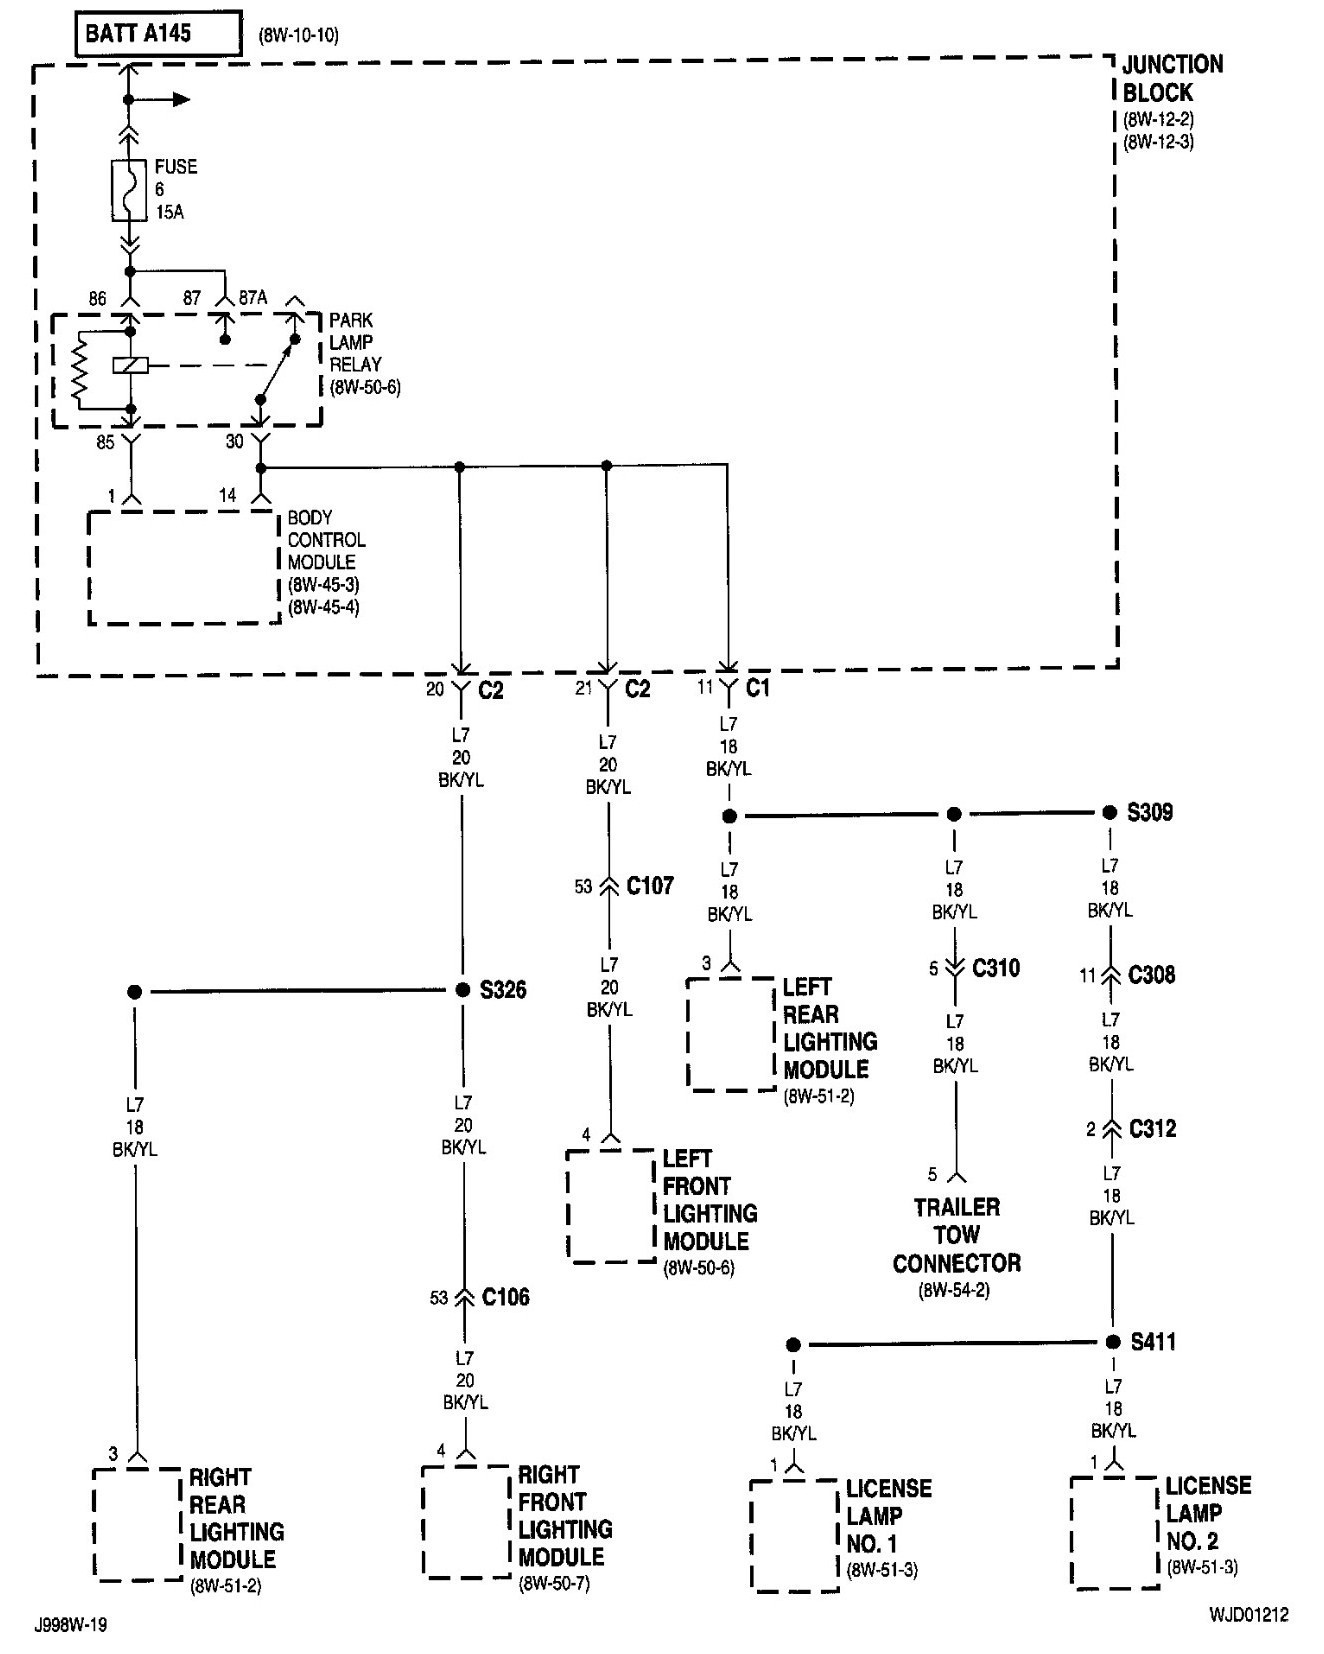 2005 Jeep Grand Cherokee Engine Diagram 2005 Jeep Grand Cherokee Trailer Wiring Diagram Collection Of 2005 Jeep Grand Cherokee Engine Diagram